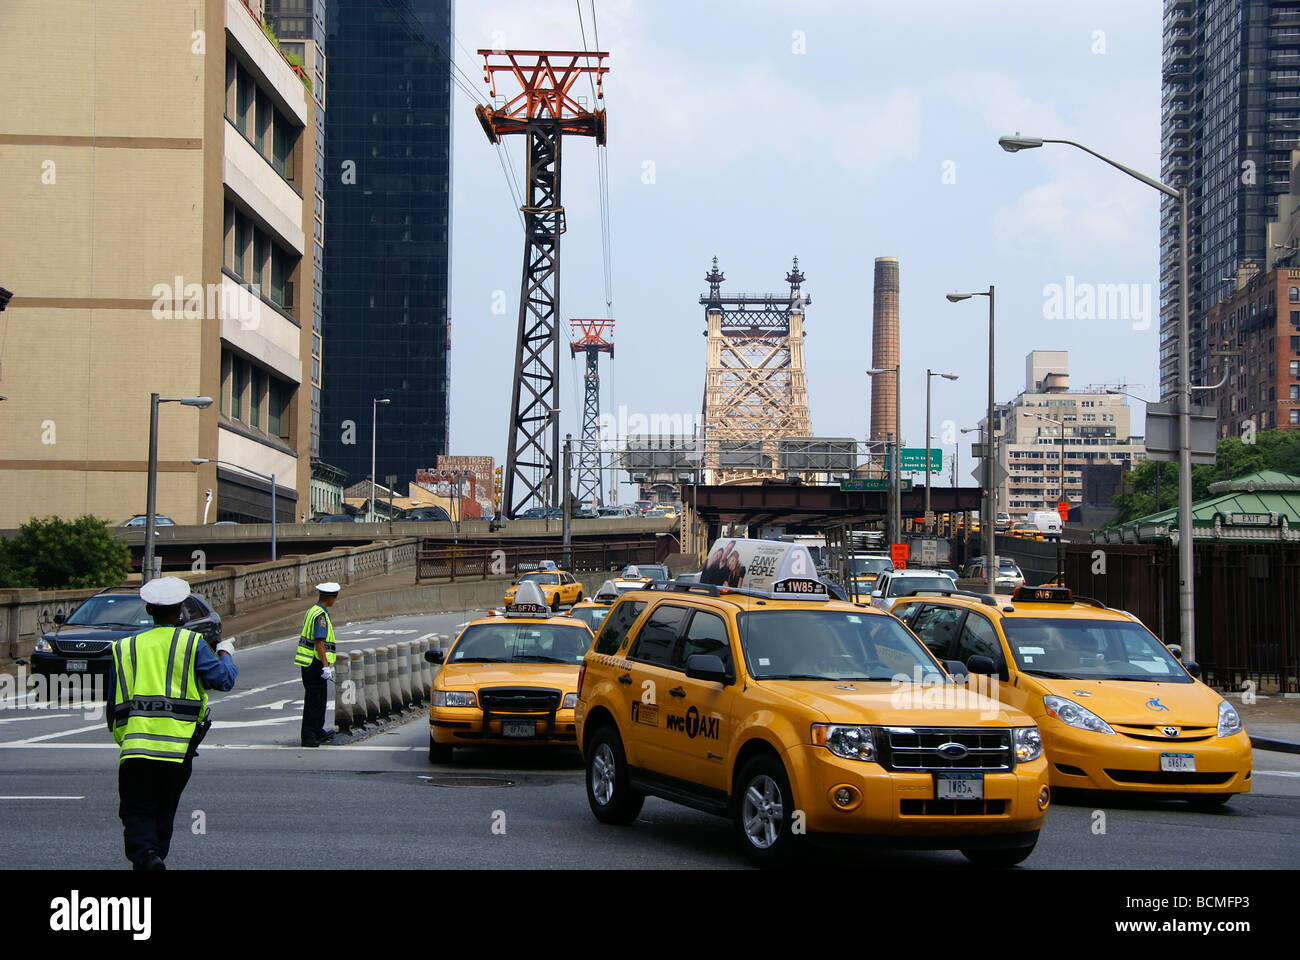 Police officers direct traffic in Manhattan by Roosevelt Island tramway station - Stock Image